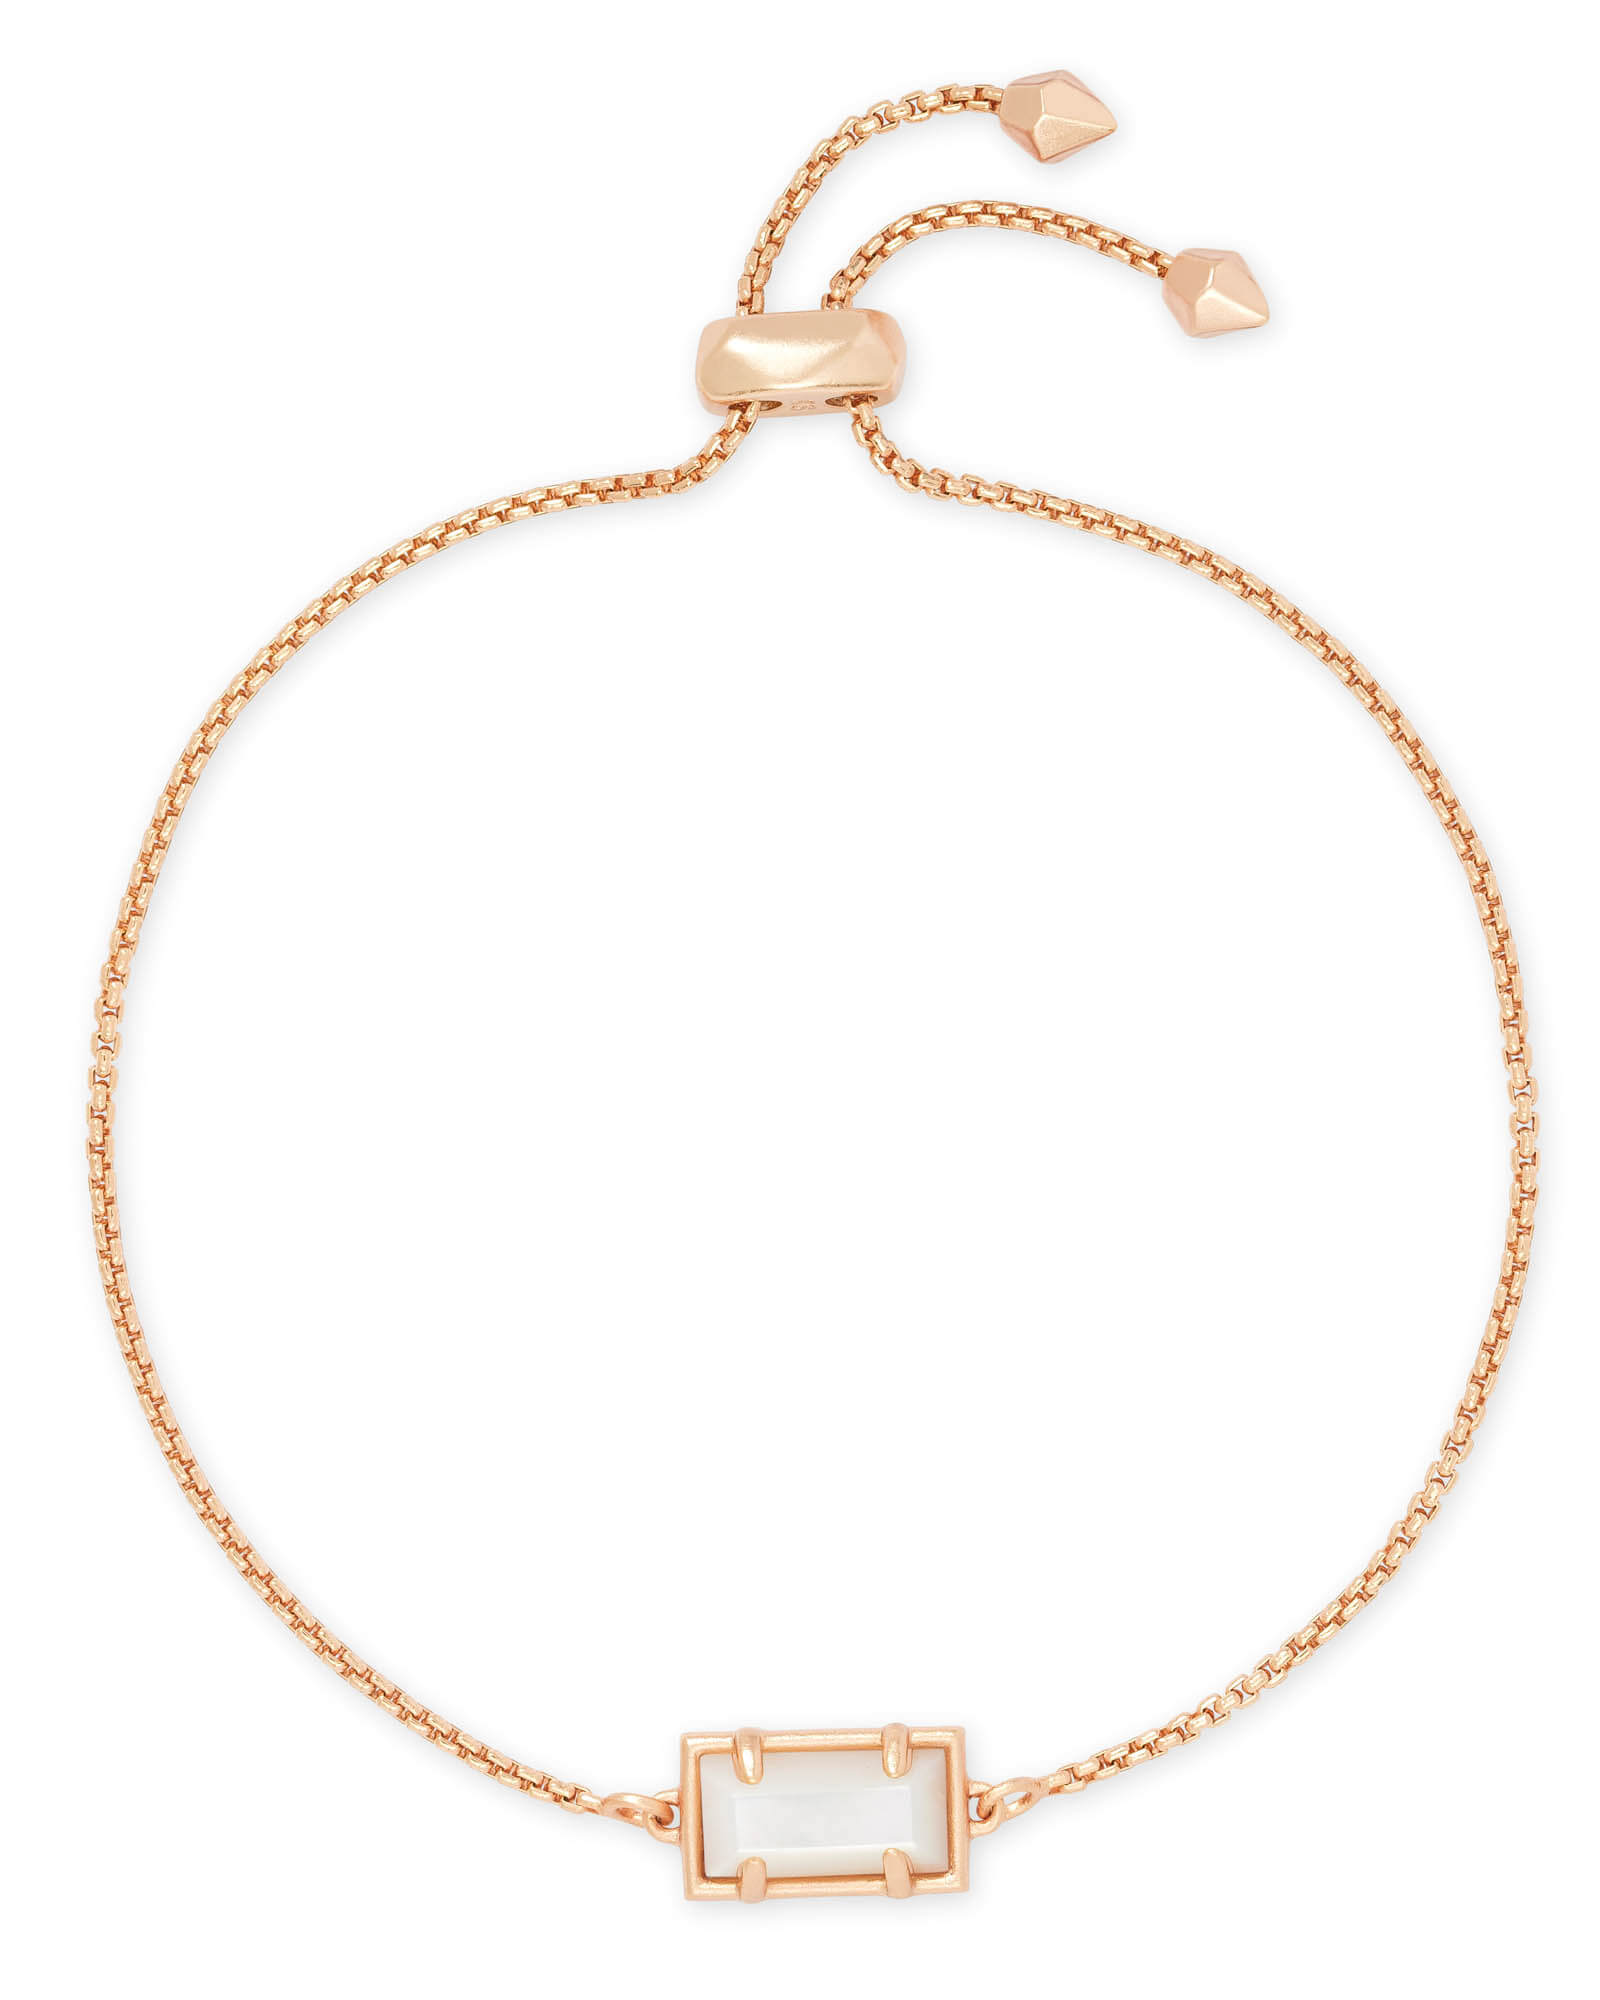 Phillipa Rose Gold Chain Bracelet in Ivory Pearl